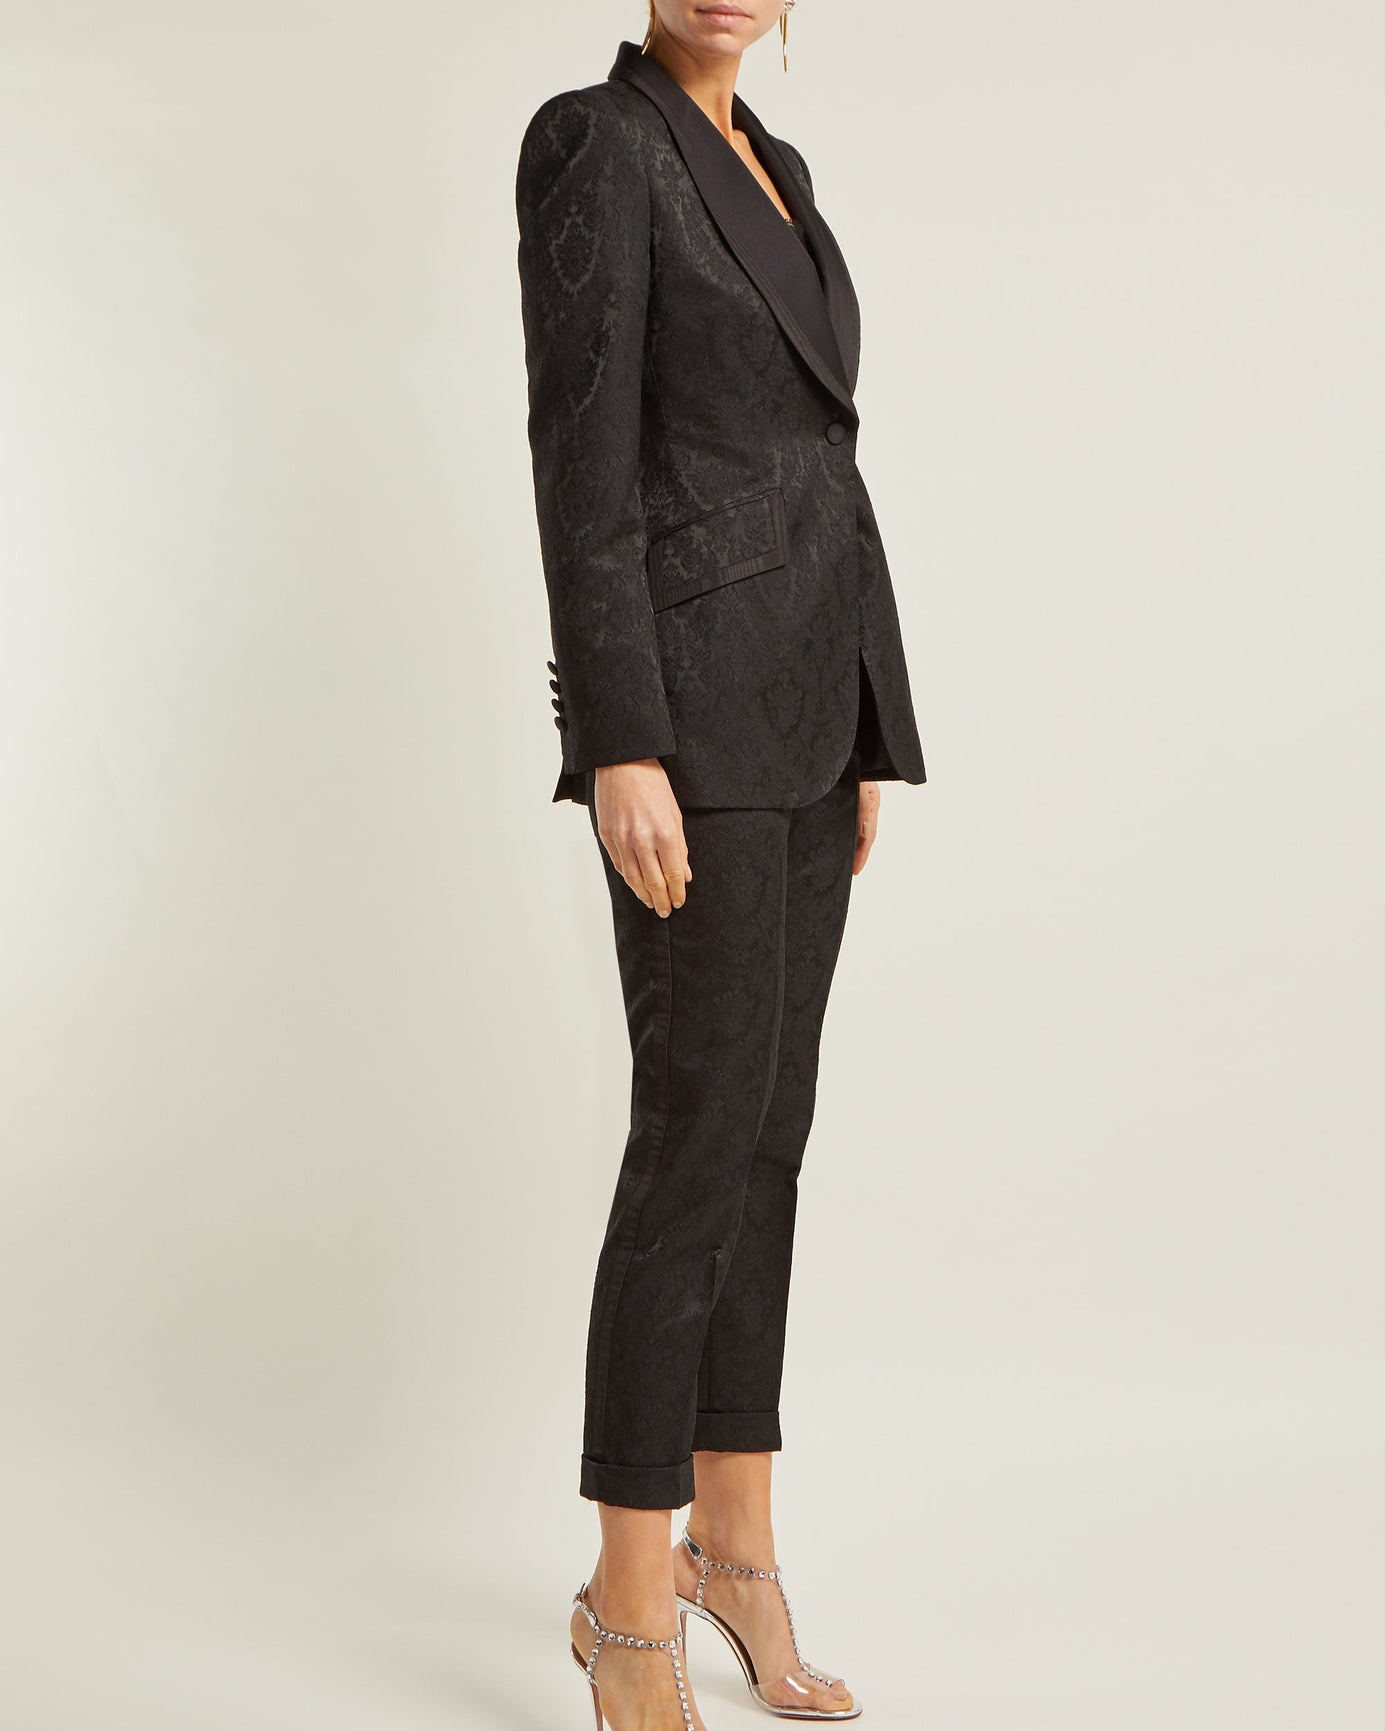 Black Floral-Jacquard Blazer and Trousers